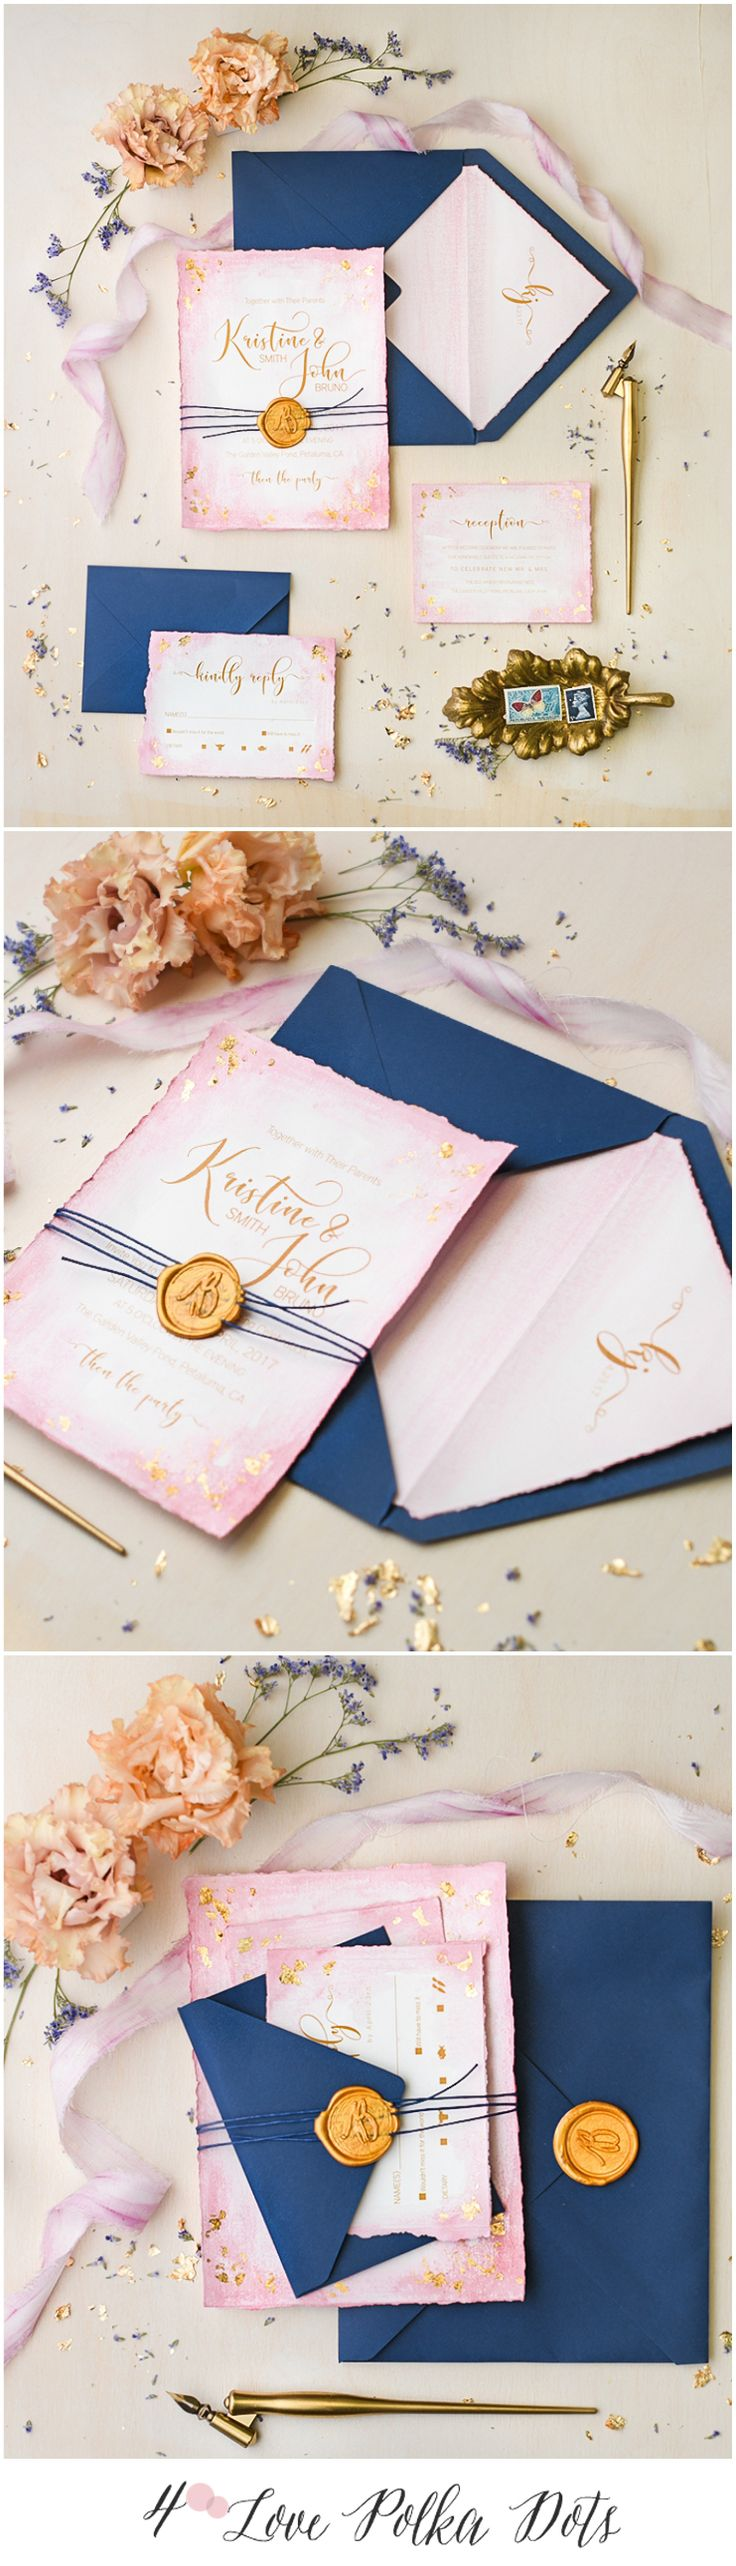 Whimsical rustic Pink & Navy wedding invitations – gold foiled and wax stamped #sponsored